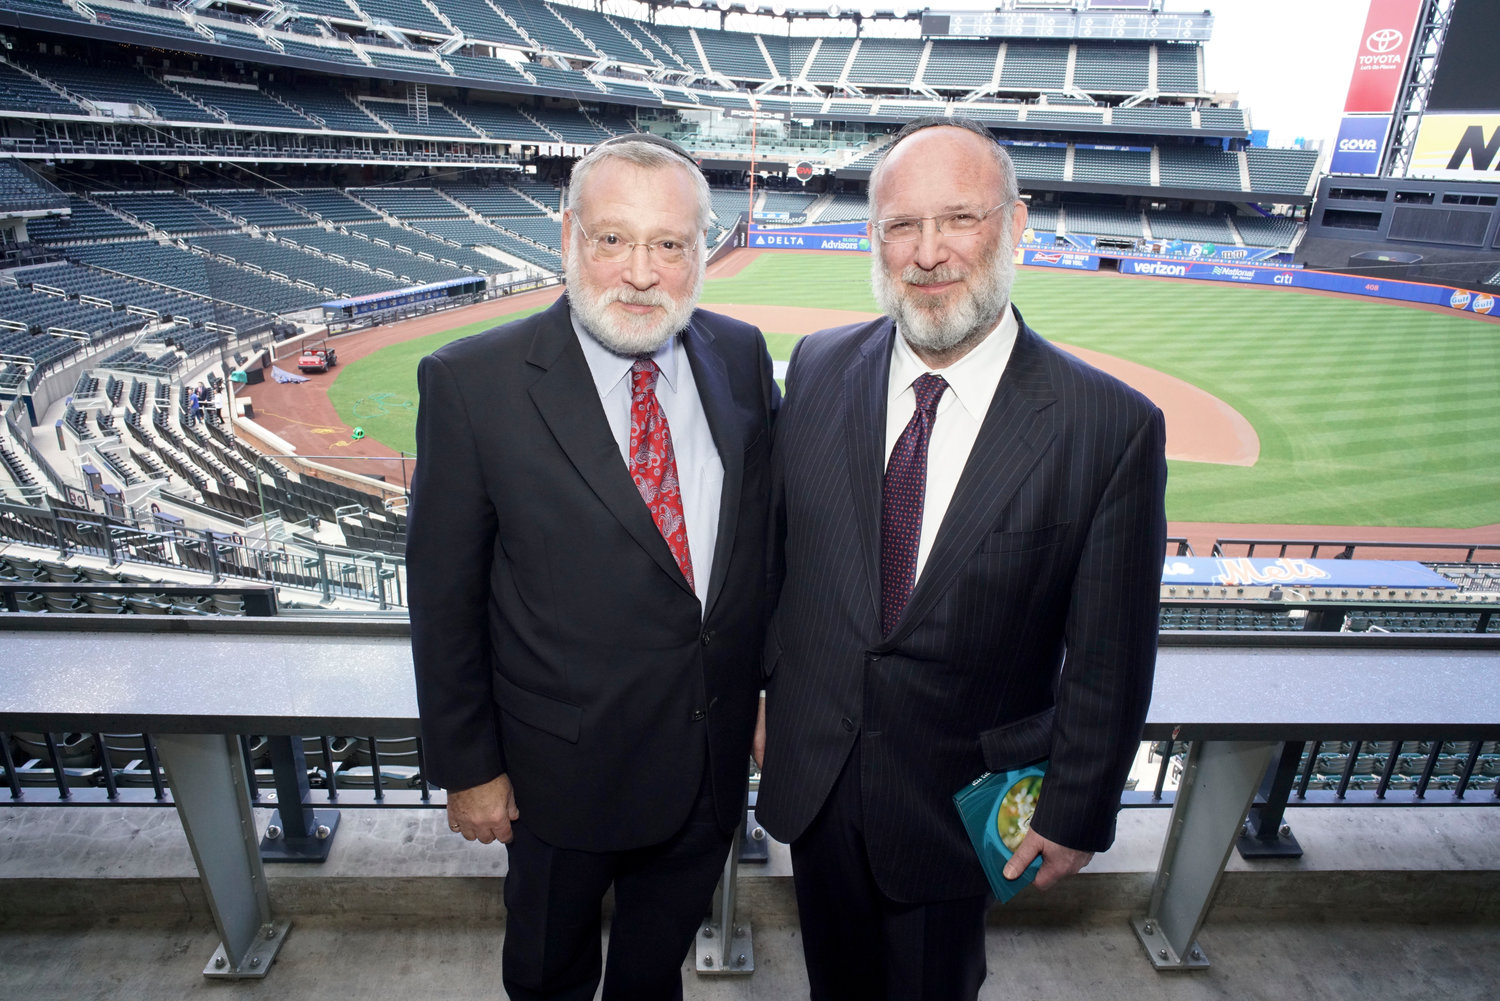 Orthodox Union Executive Vice President Allen Fagin of Woodmere (left) OU President Moishe Bane of Lawrence, at last year's Torah New York at Citi Field. This year's event is set for Sunday, Sept. 22.